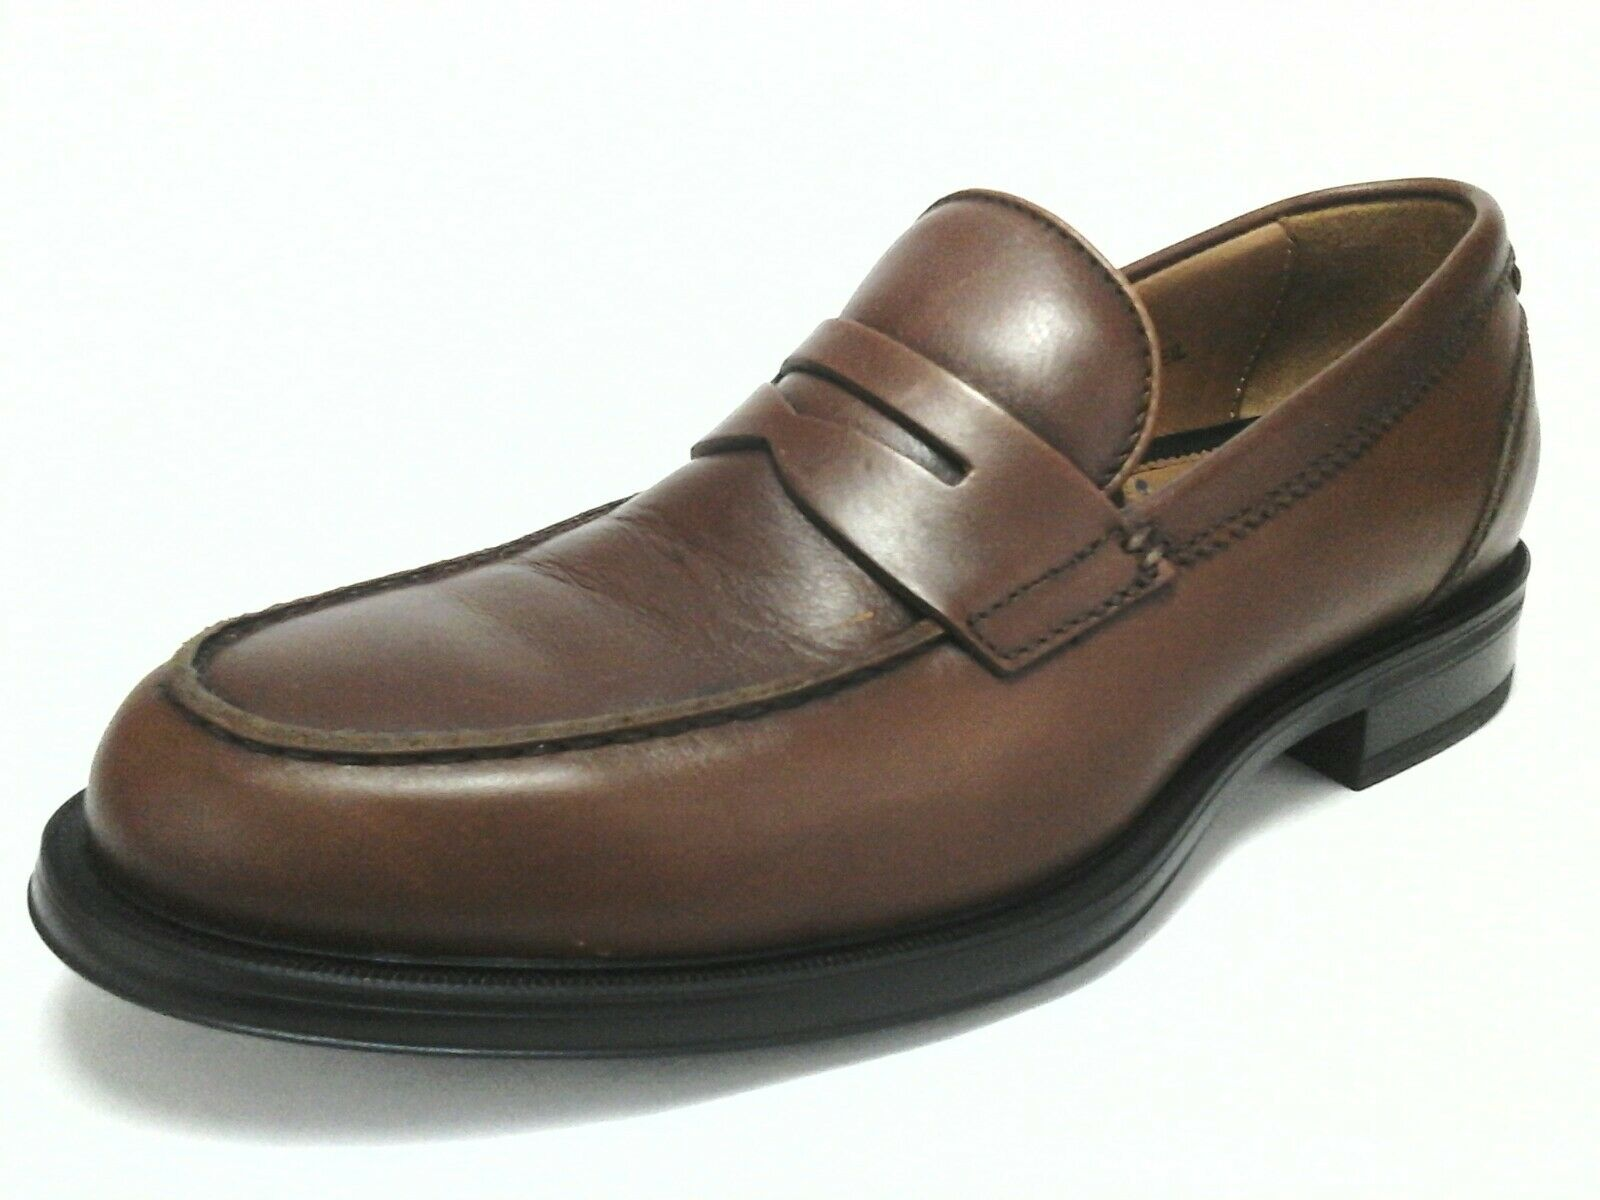 Aquatalia Neil Mens Comfort shoes Penny Loafers Brown Leather 8 41 Made in